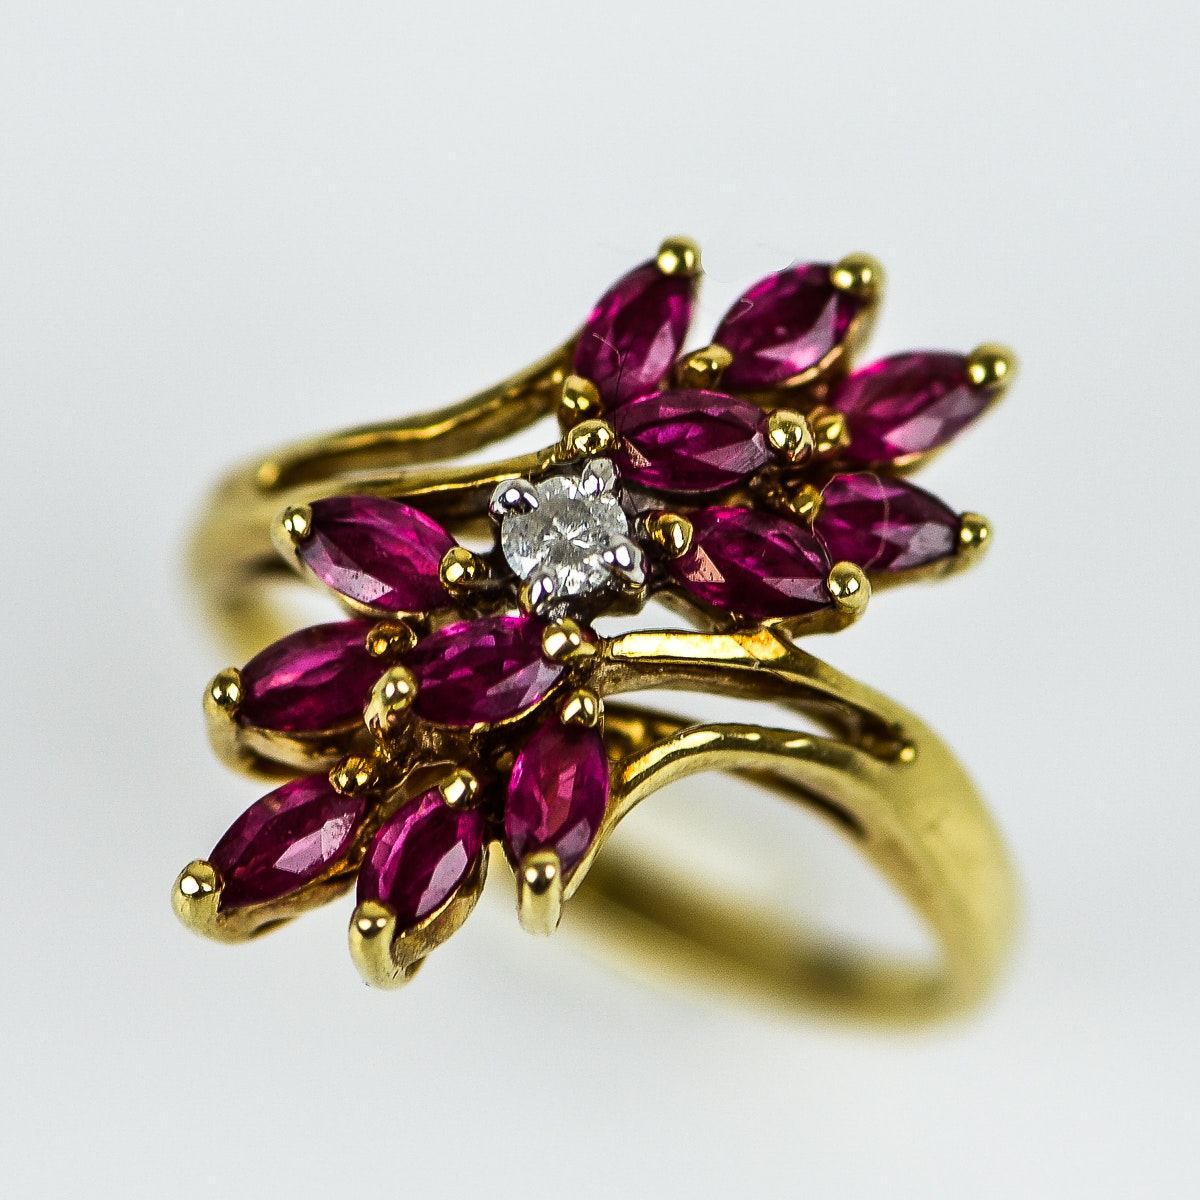 14K Yellow Gold, Synthetic Ruby, and Diamond Waterfall Ring